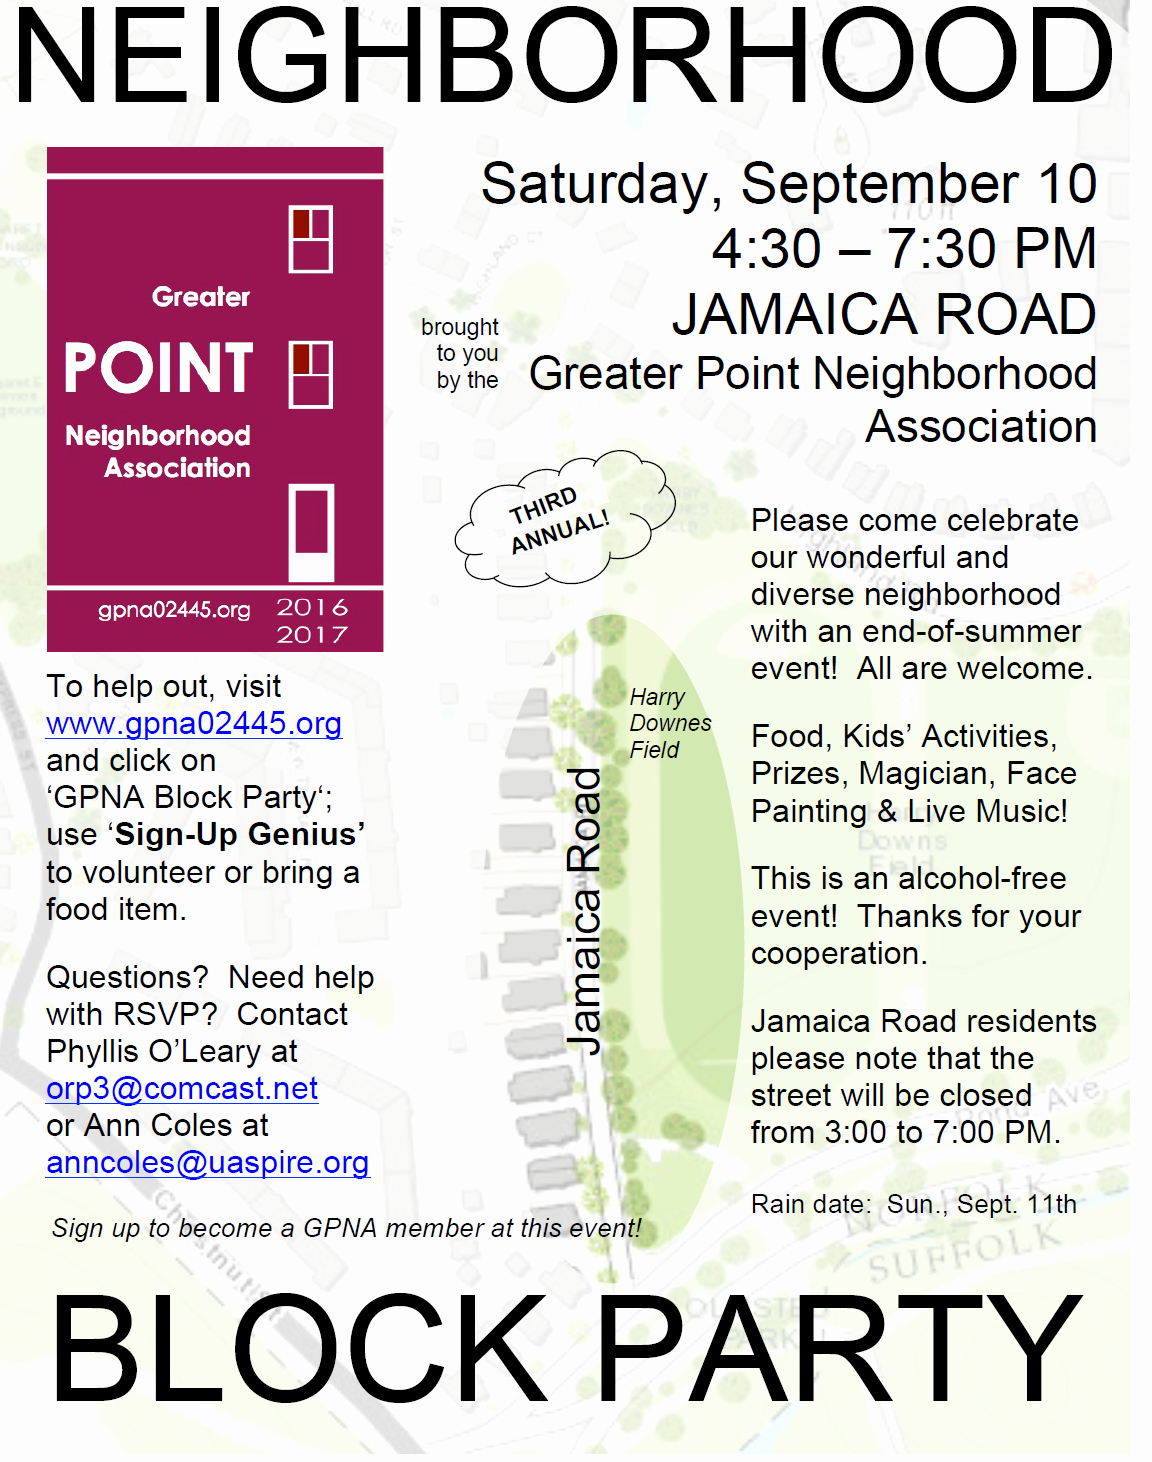 Neighborhood Block Party Flyer Template Awesome Greater Point Neighborhood association